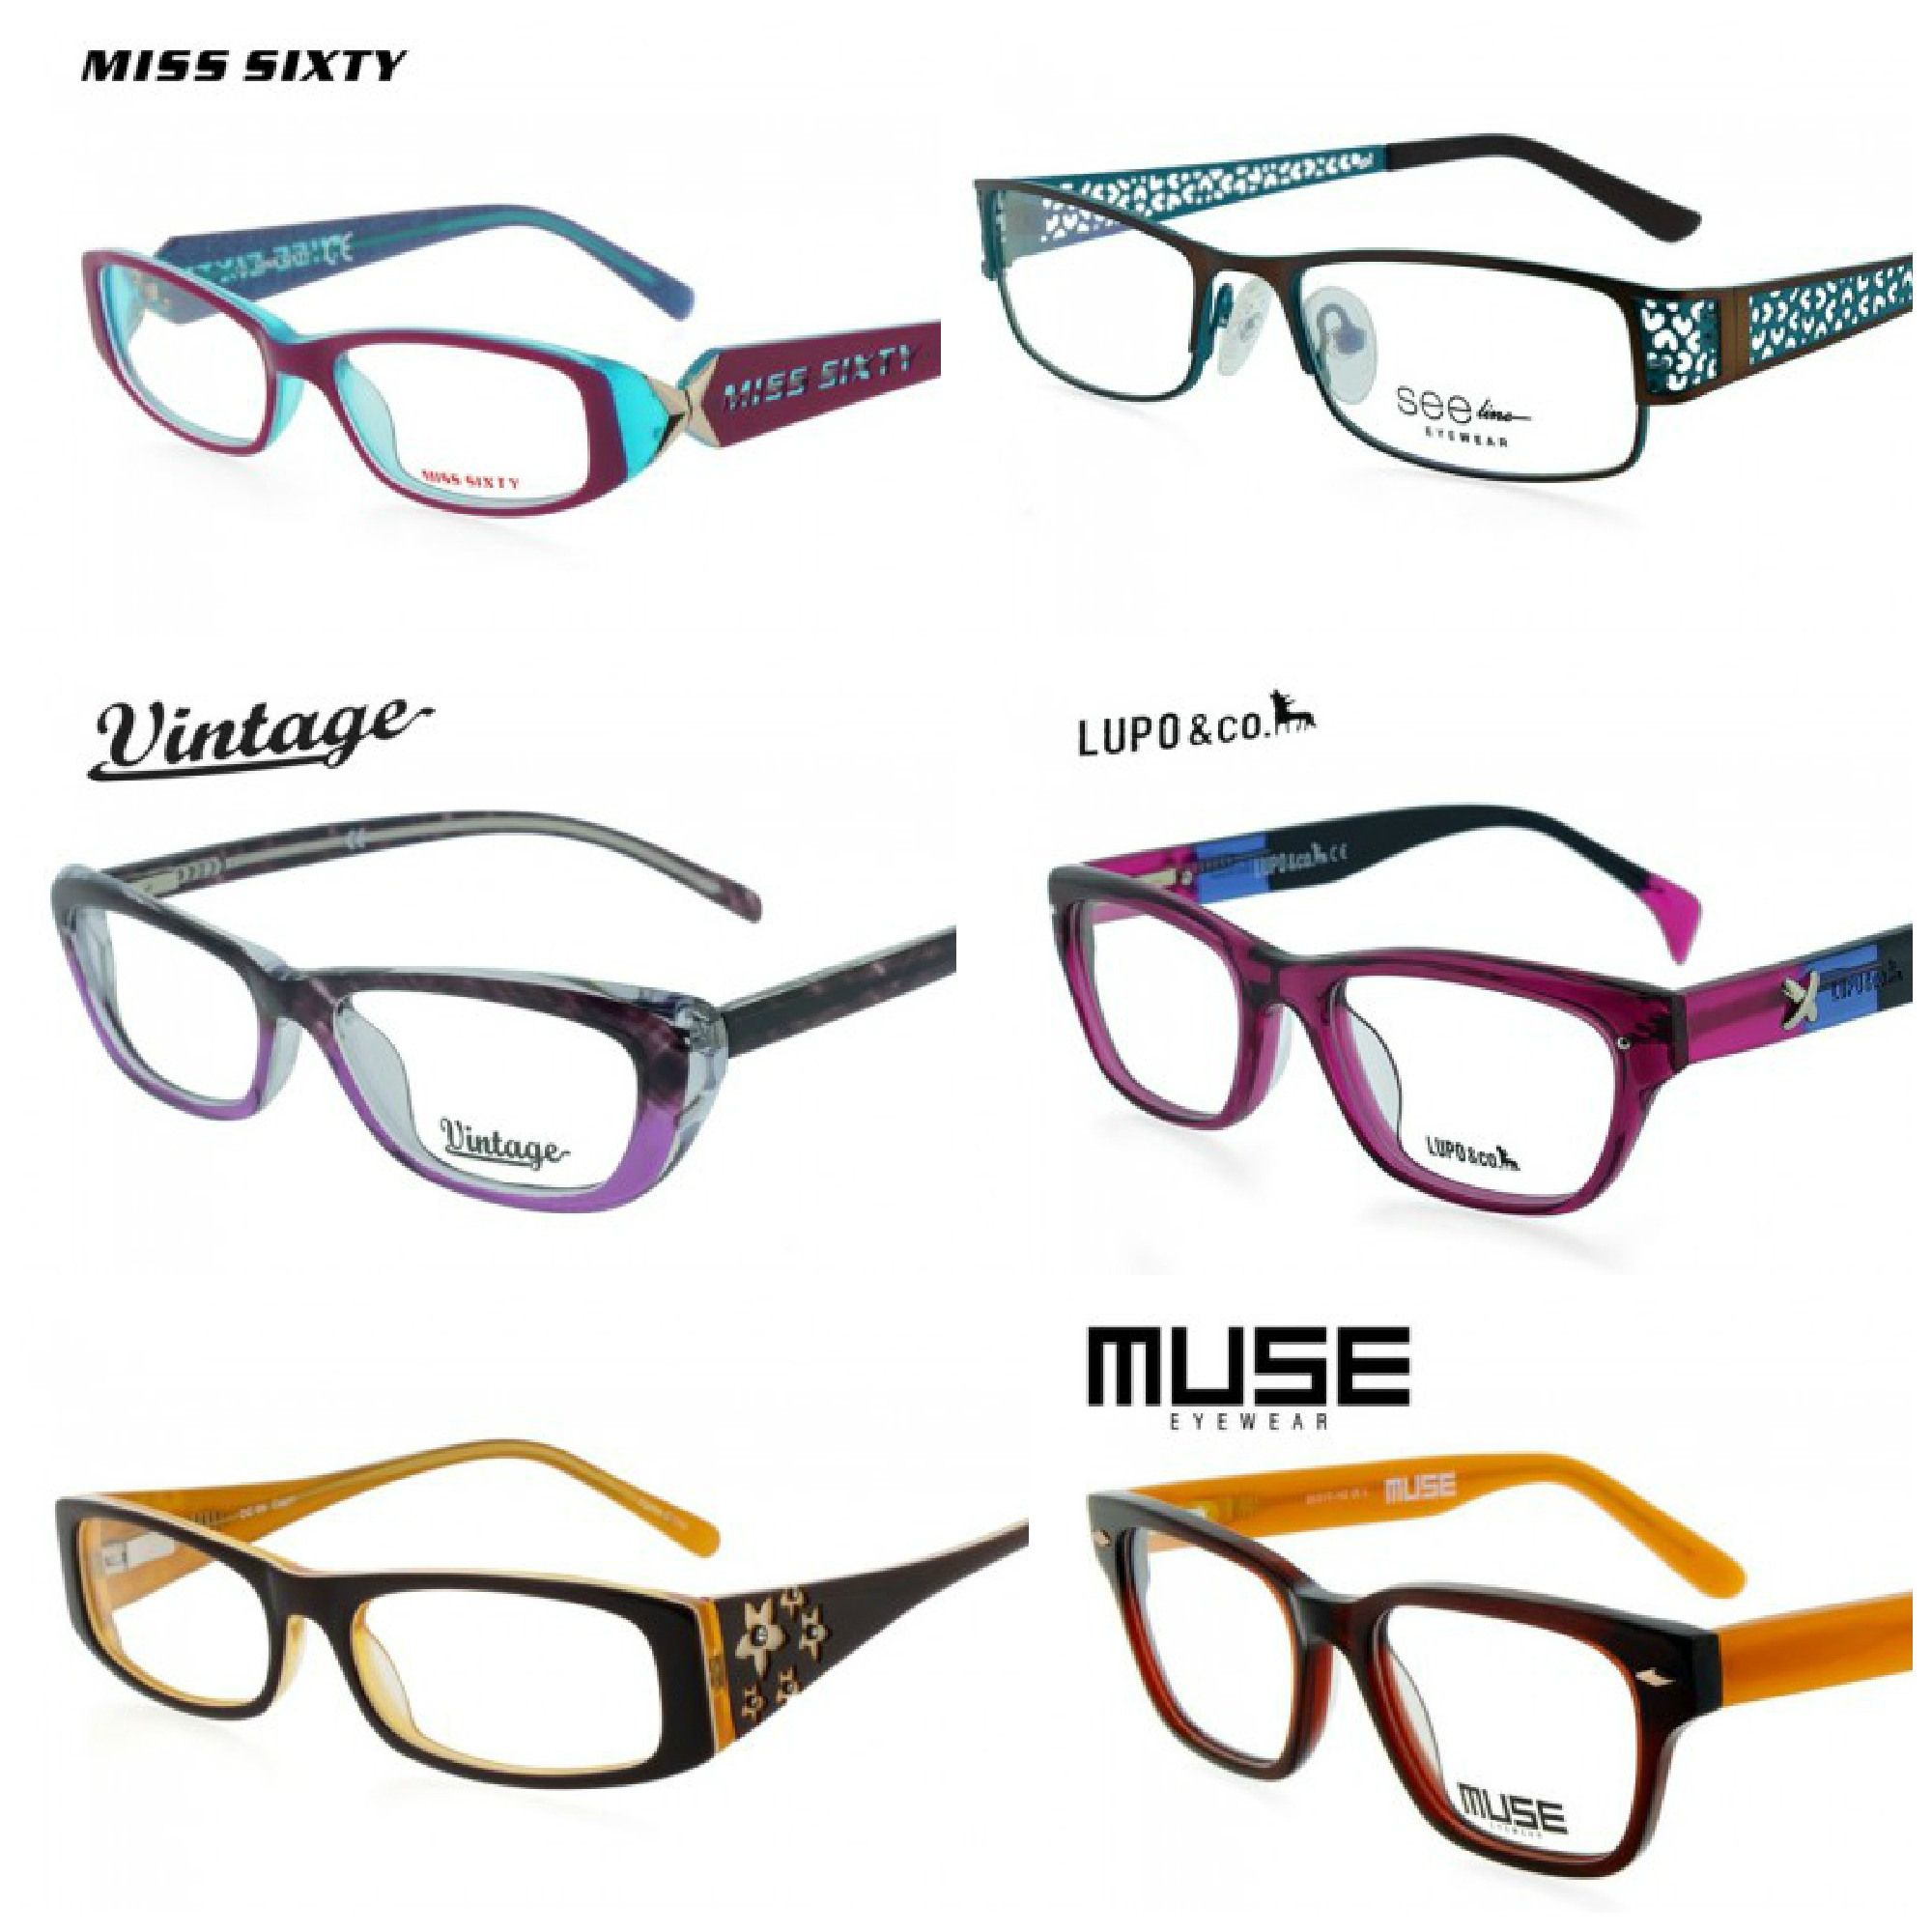 777f0836c4d Trendy Eyeglasses - Fun   Affordable. Order Online - Free Shipping +  Discount Code. Soft Memory TR90 Optical Full Frame Glasses ...